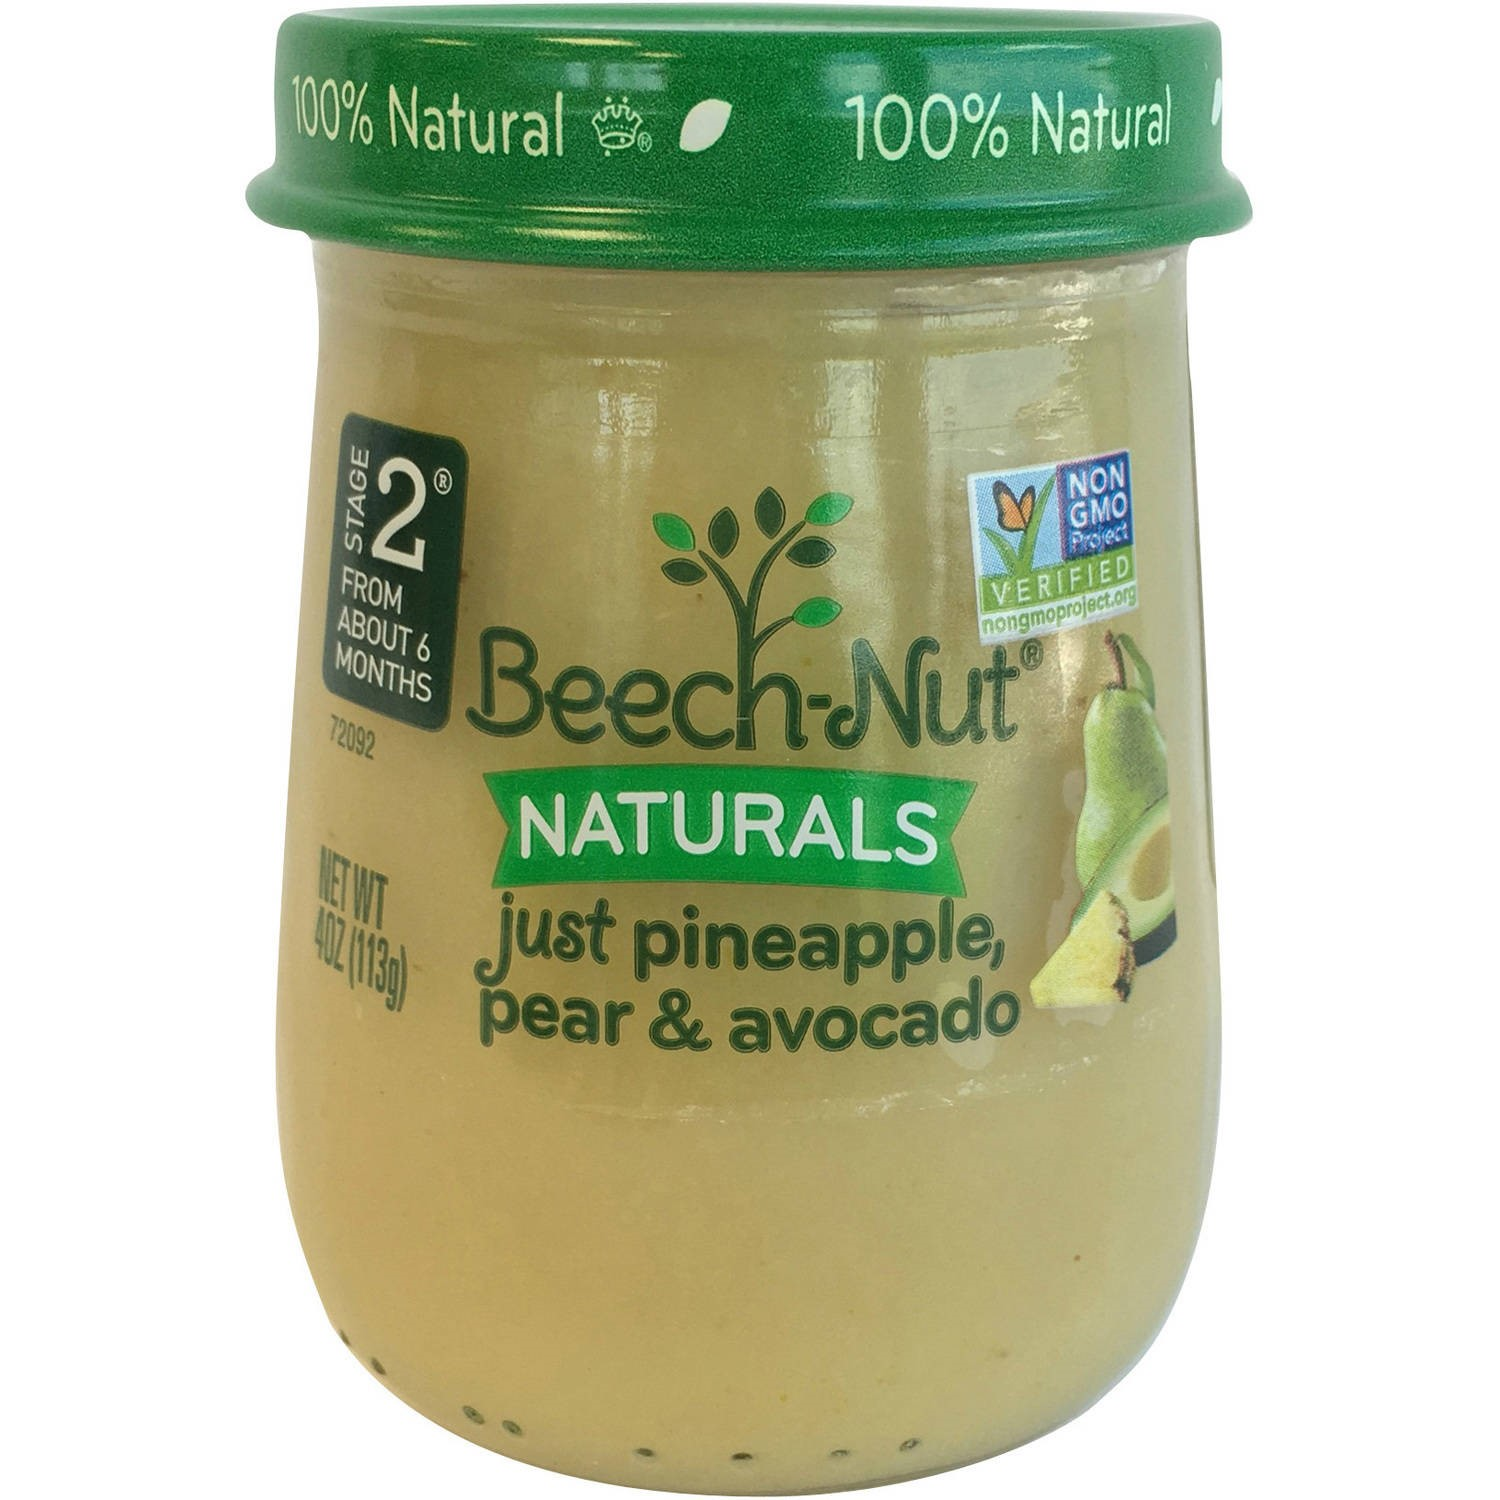 (10 Pack) Beech-Nut Naturals Just Pineapple, Pear & Avocado Stage 2 Baby Food, 4.0 oz